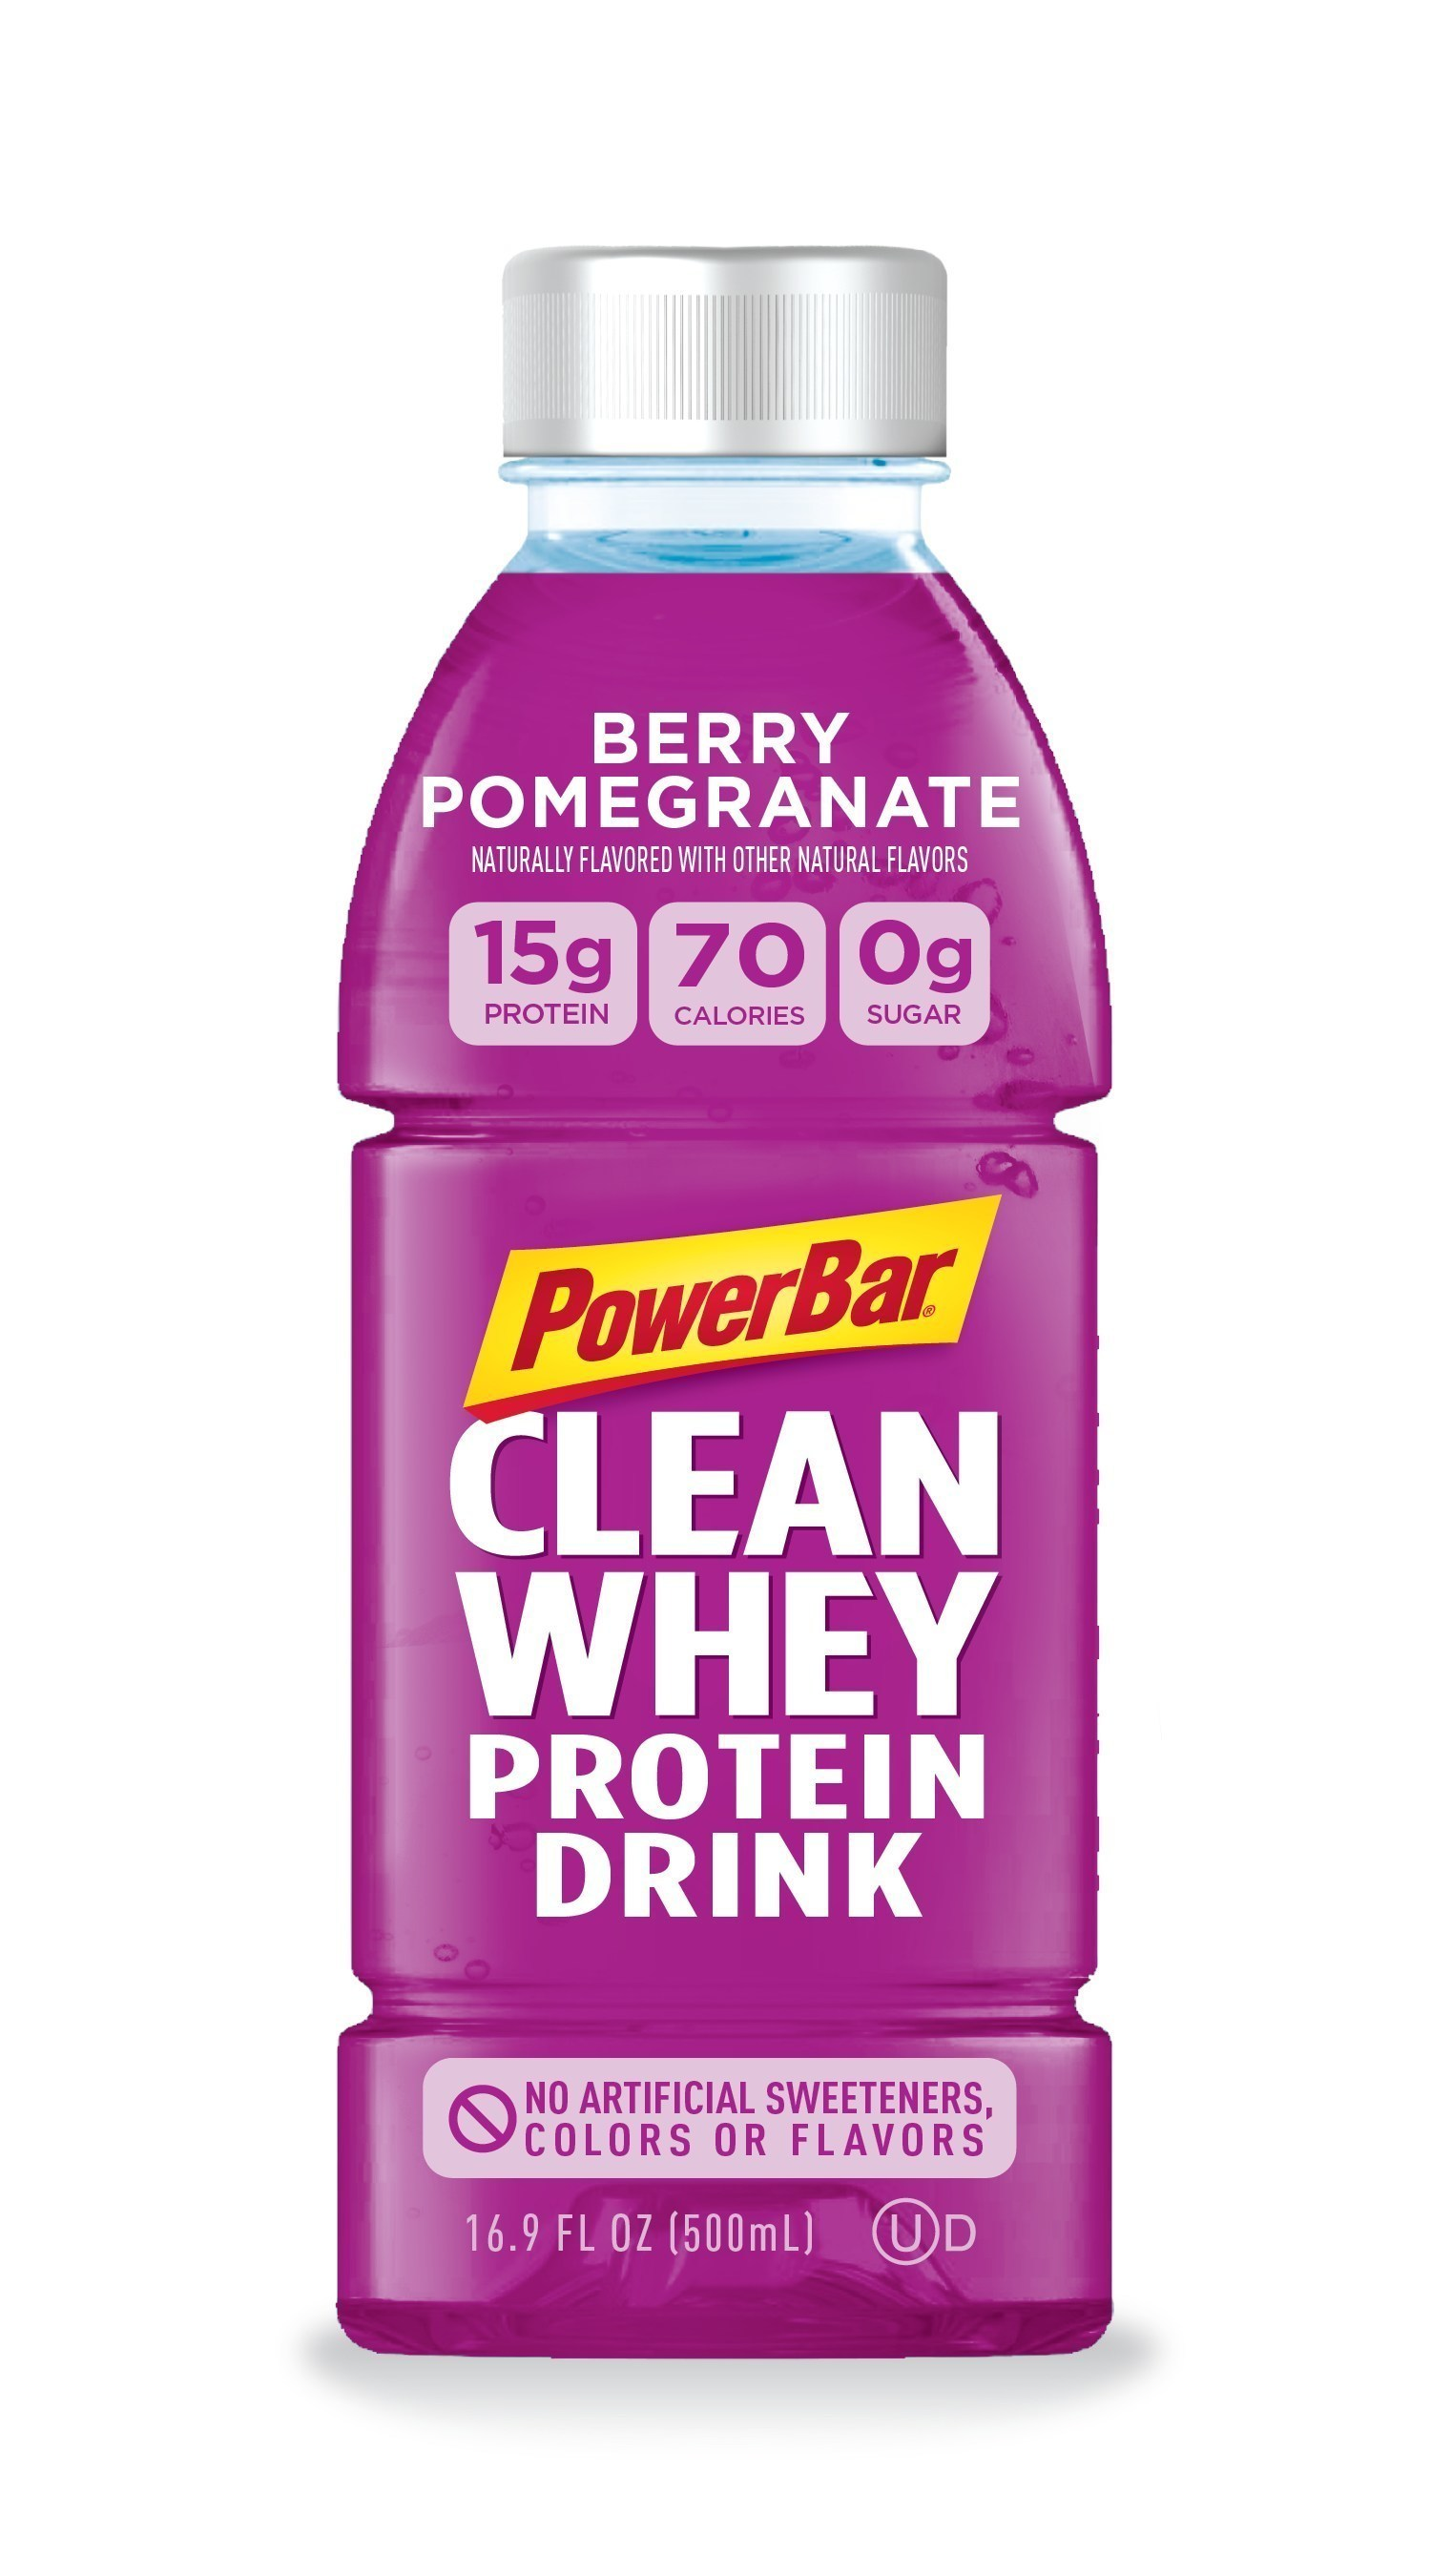 PowerBar Launches Clean Whey Product Line